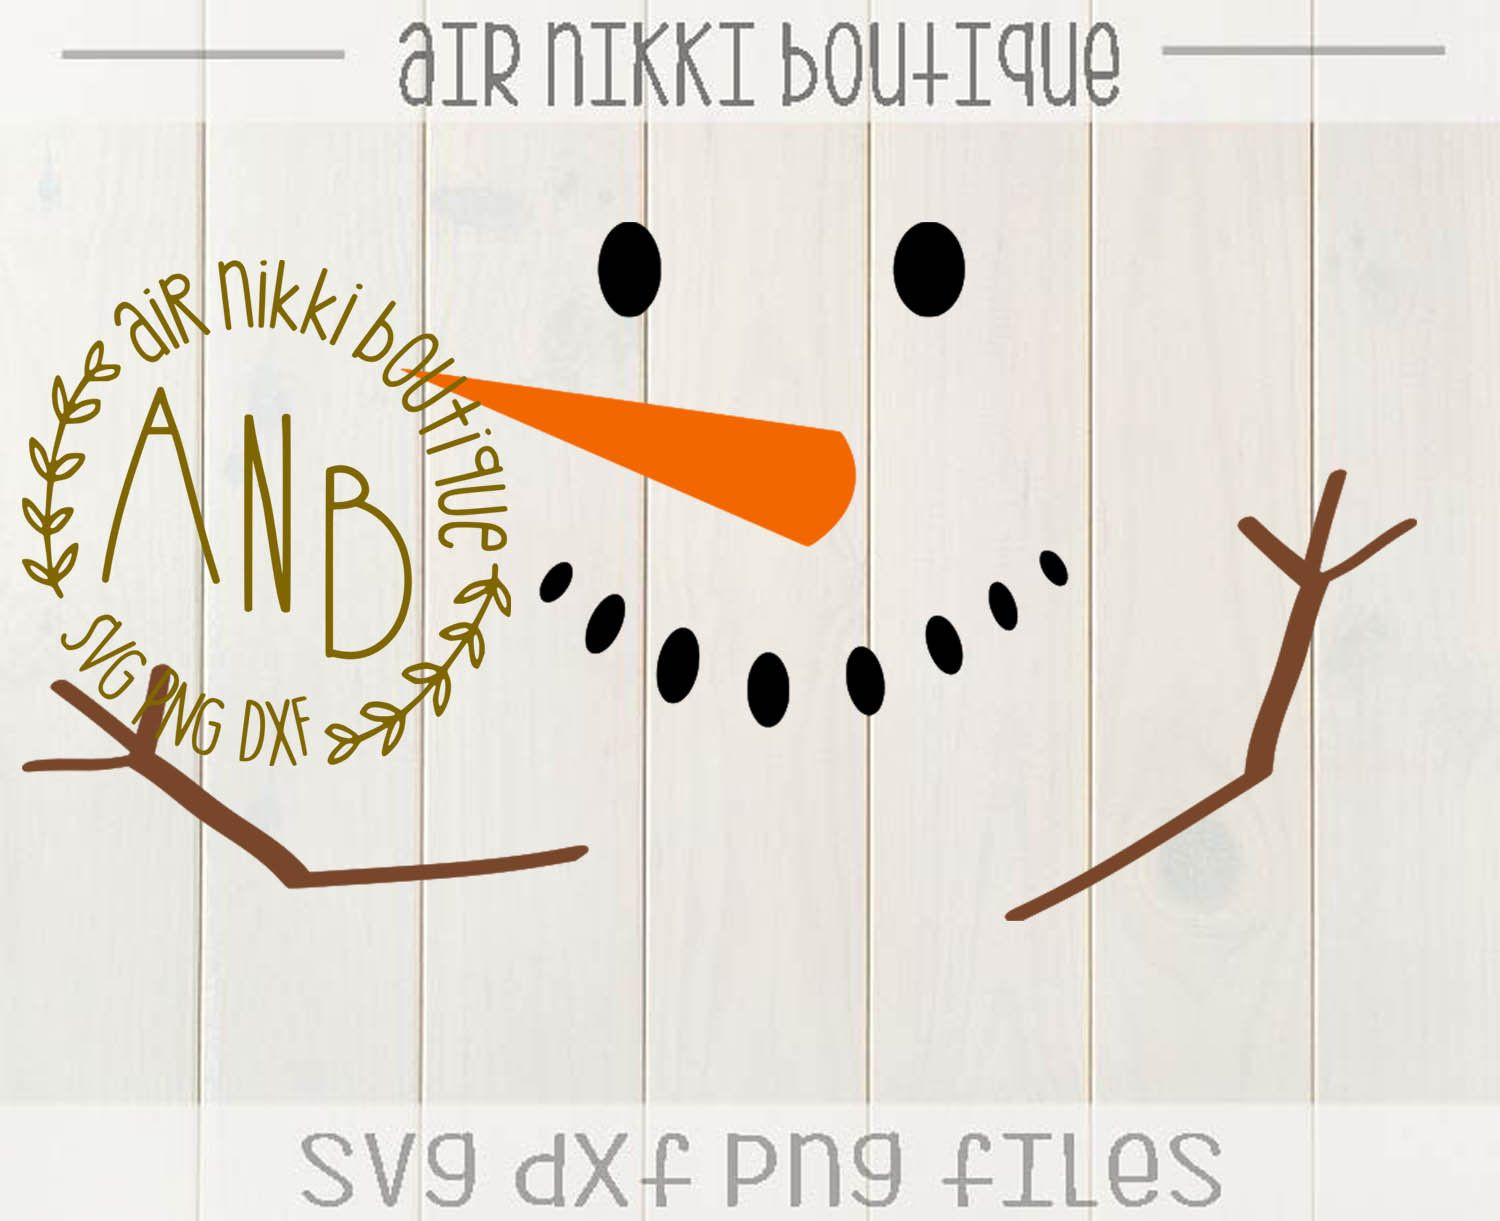 Snowman, eyes, mouth, nose, arms, SVG, DXF, PNG files